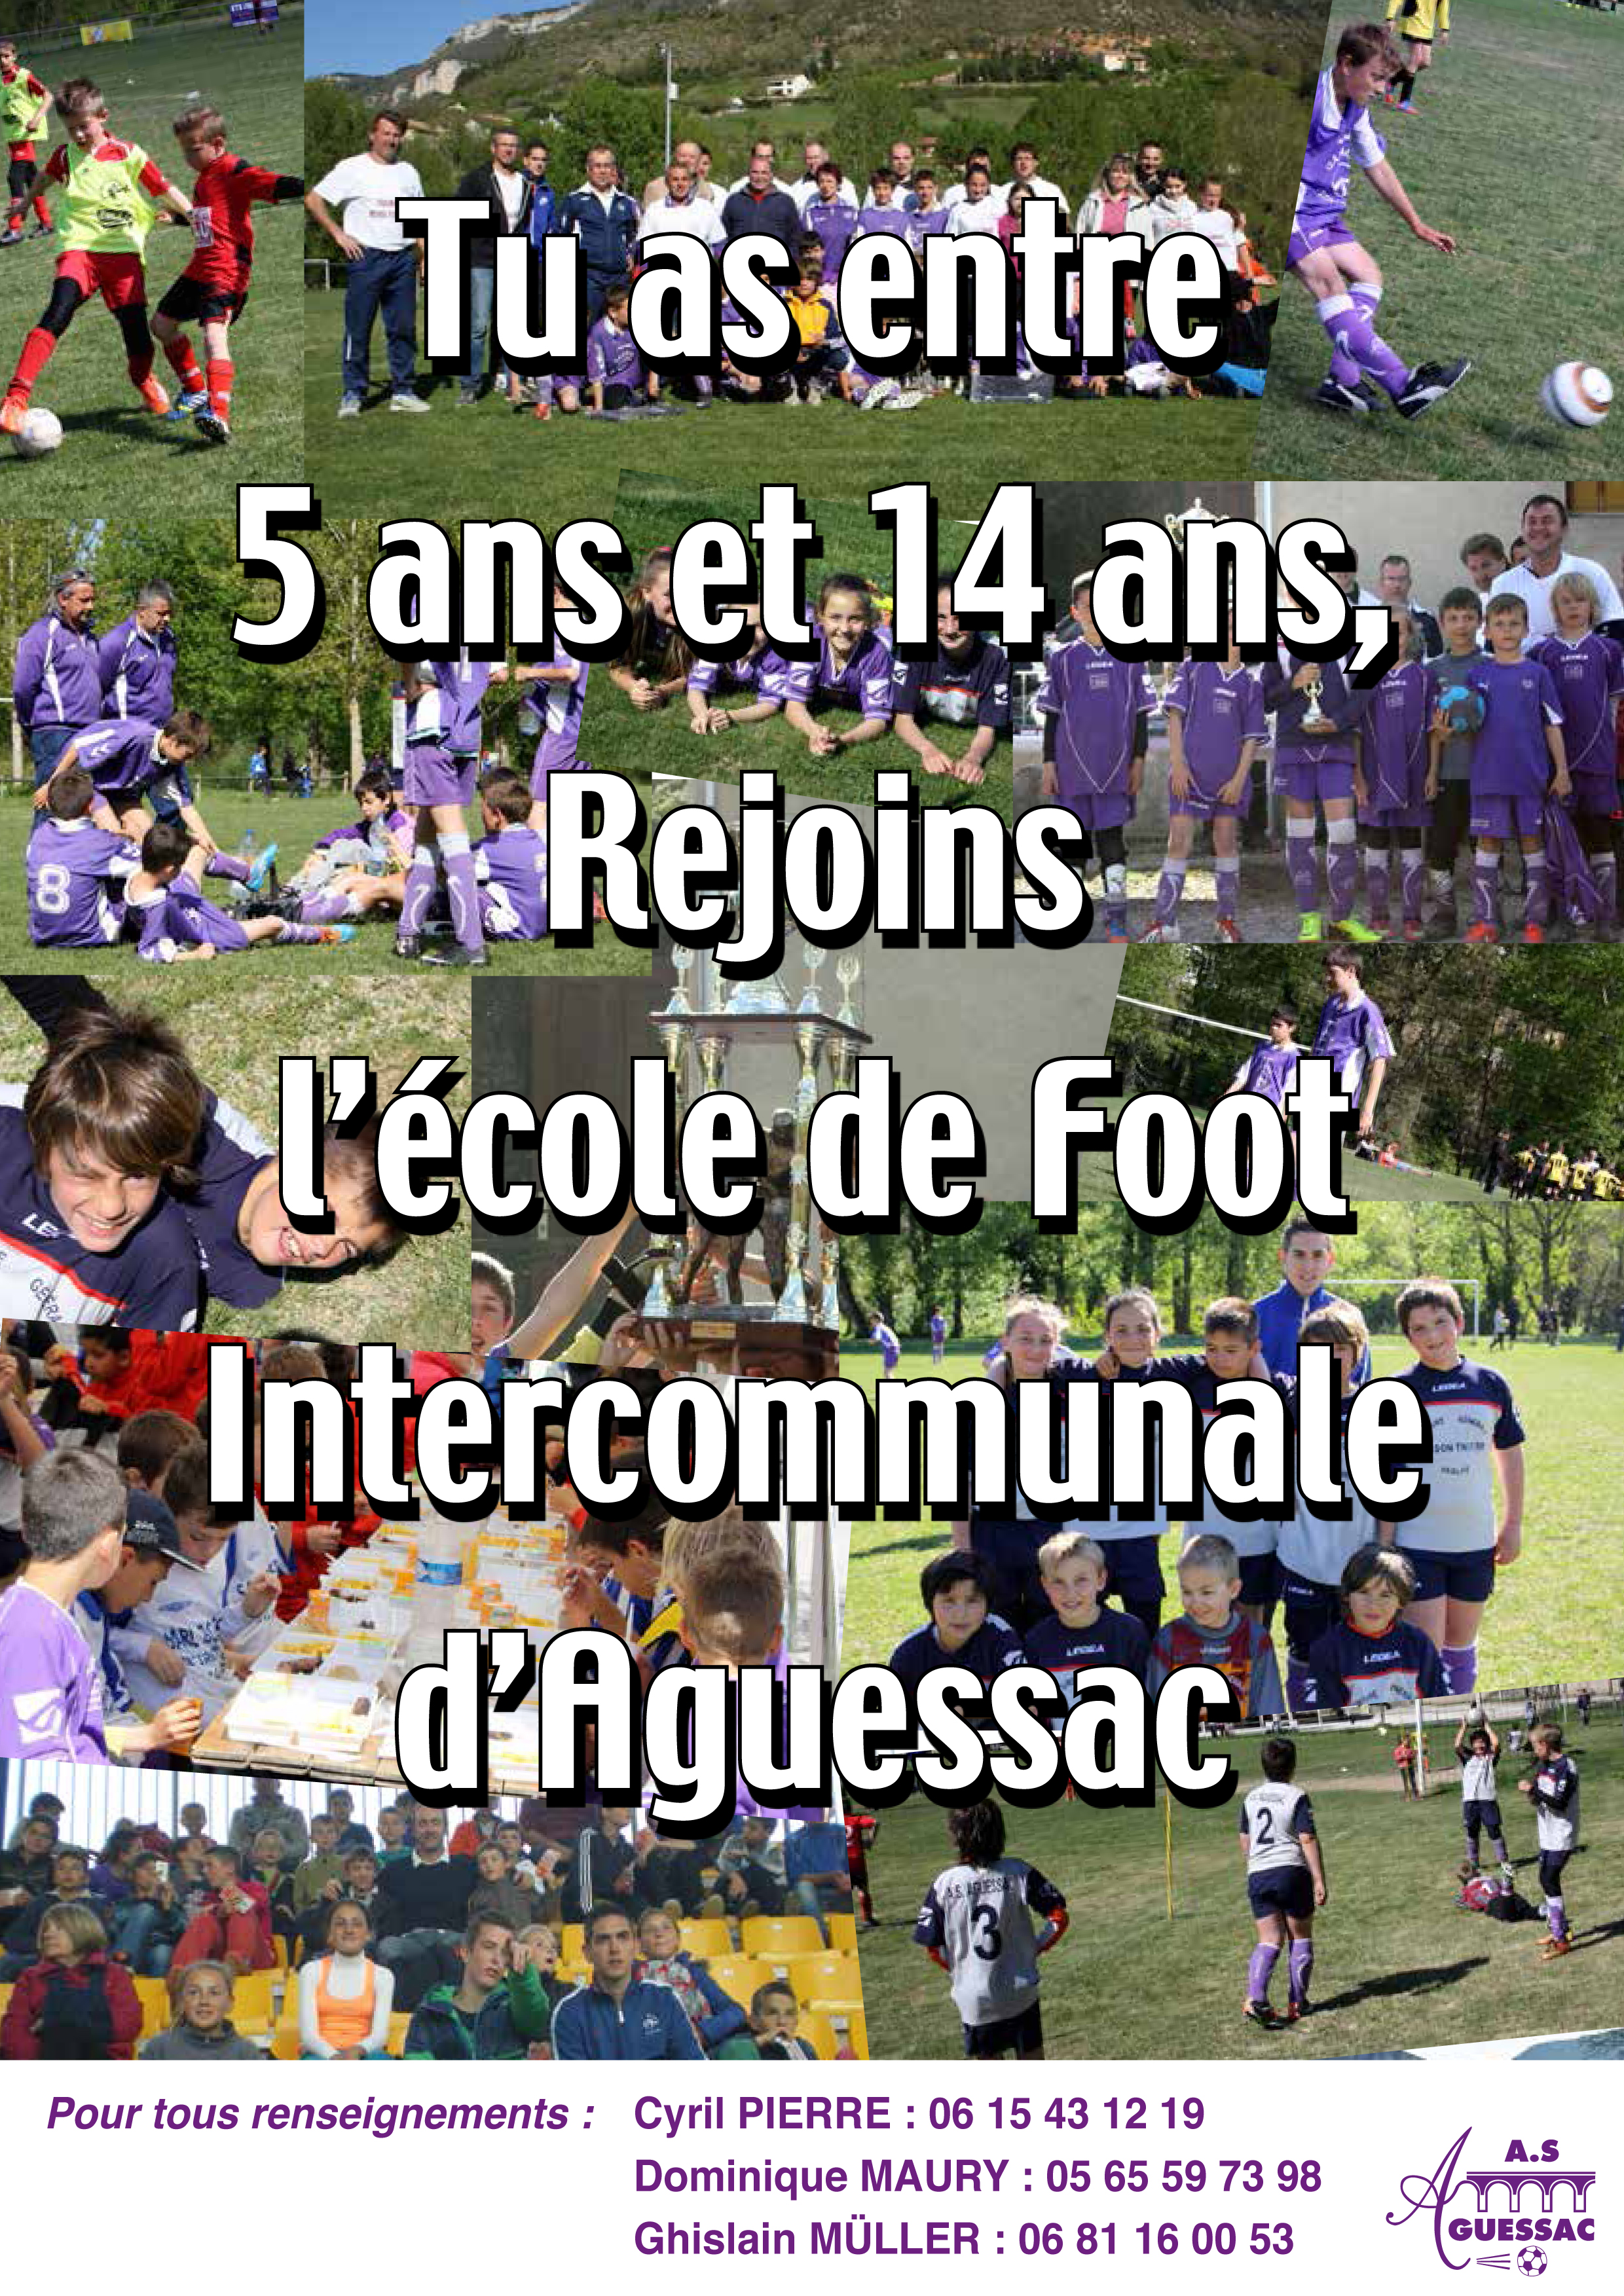 AS-Aguessacecolefoot